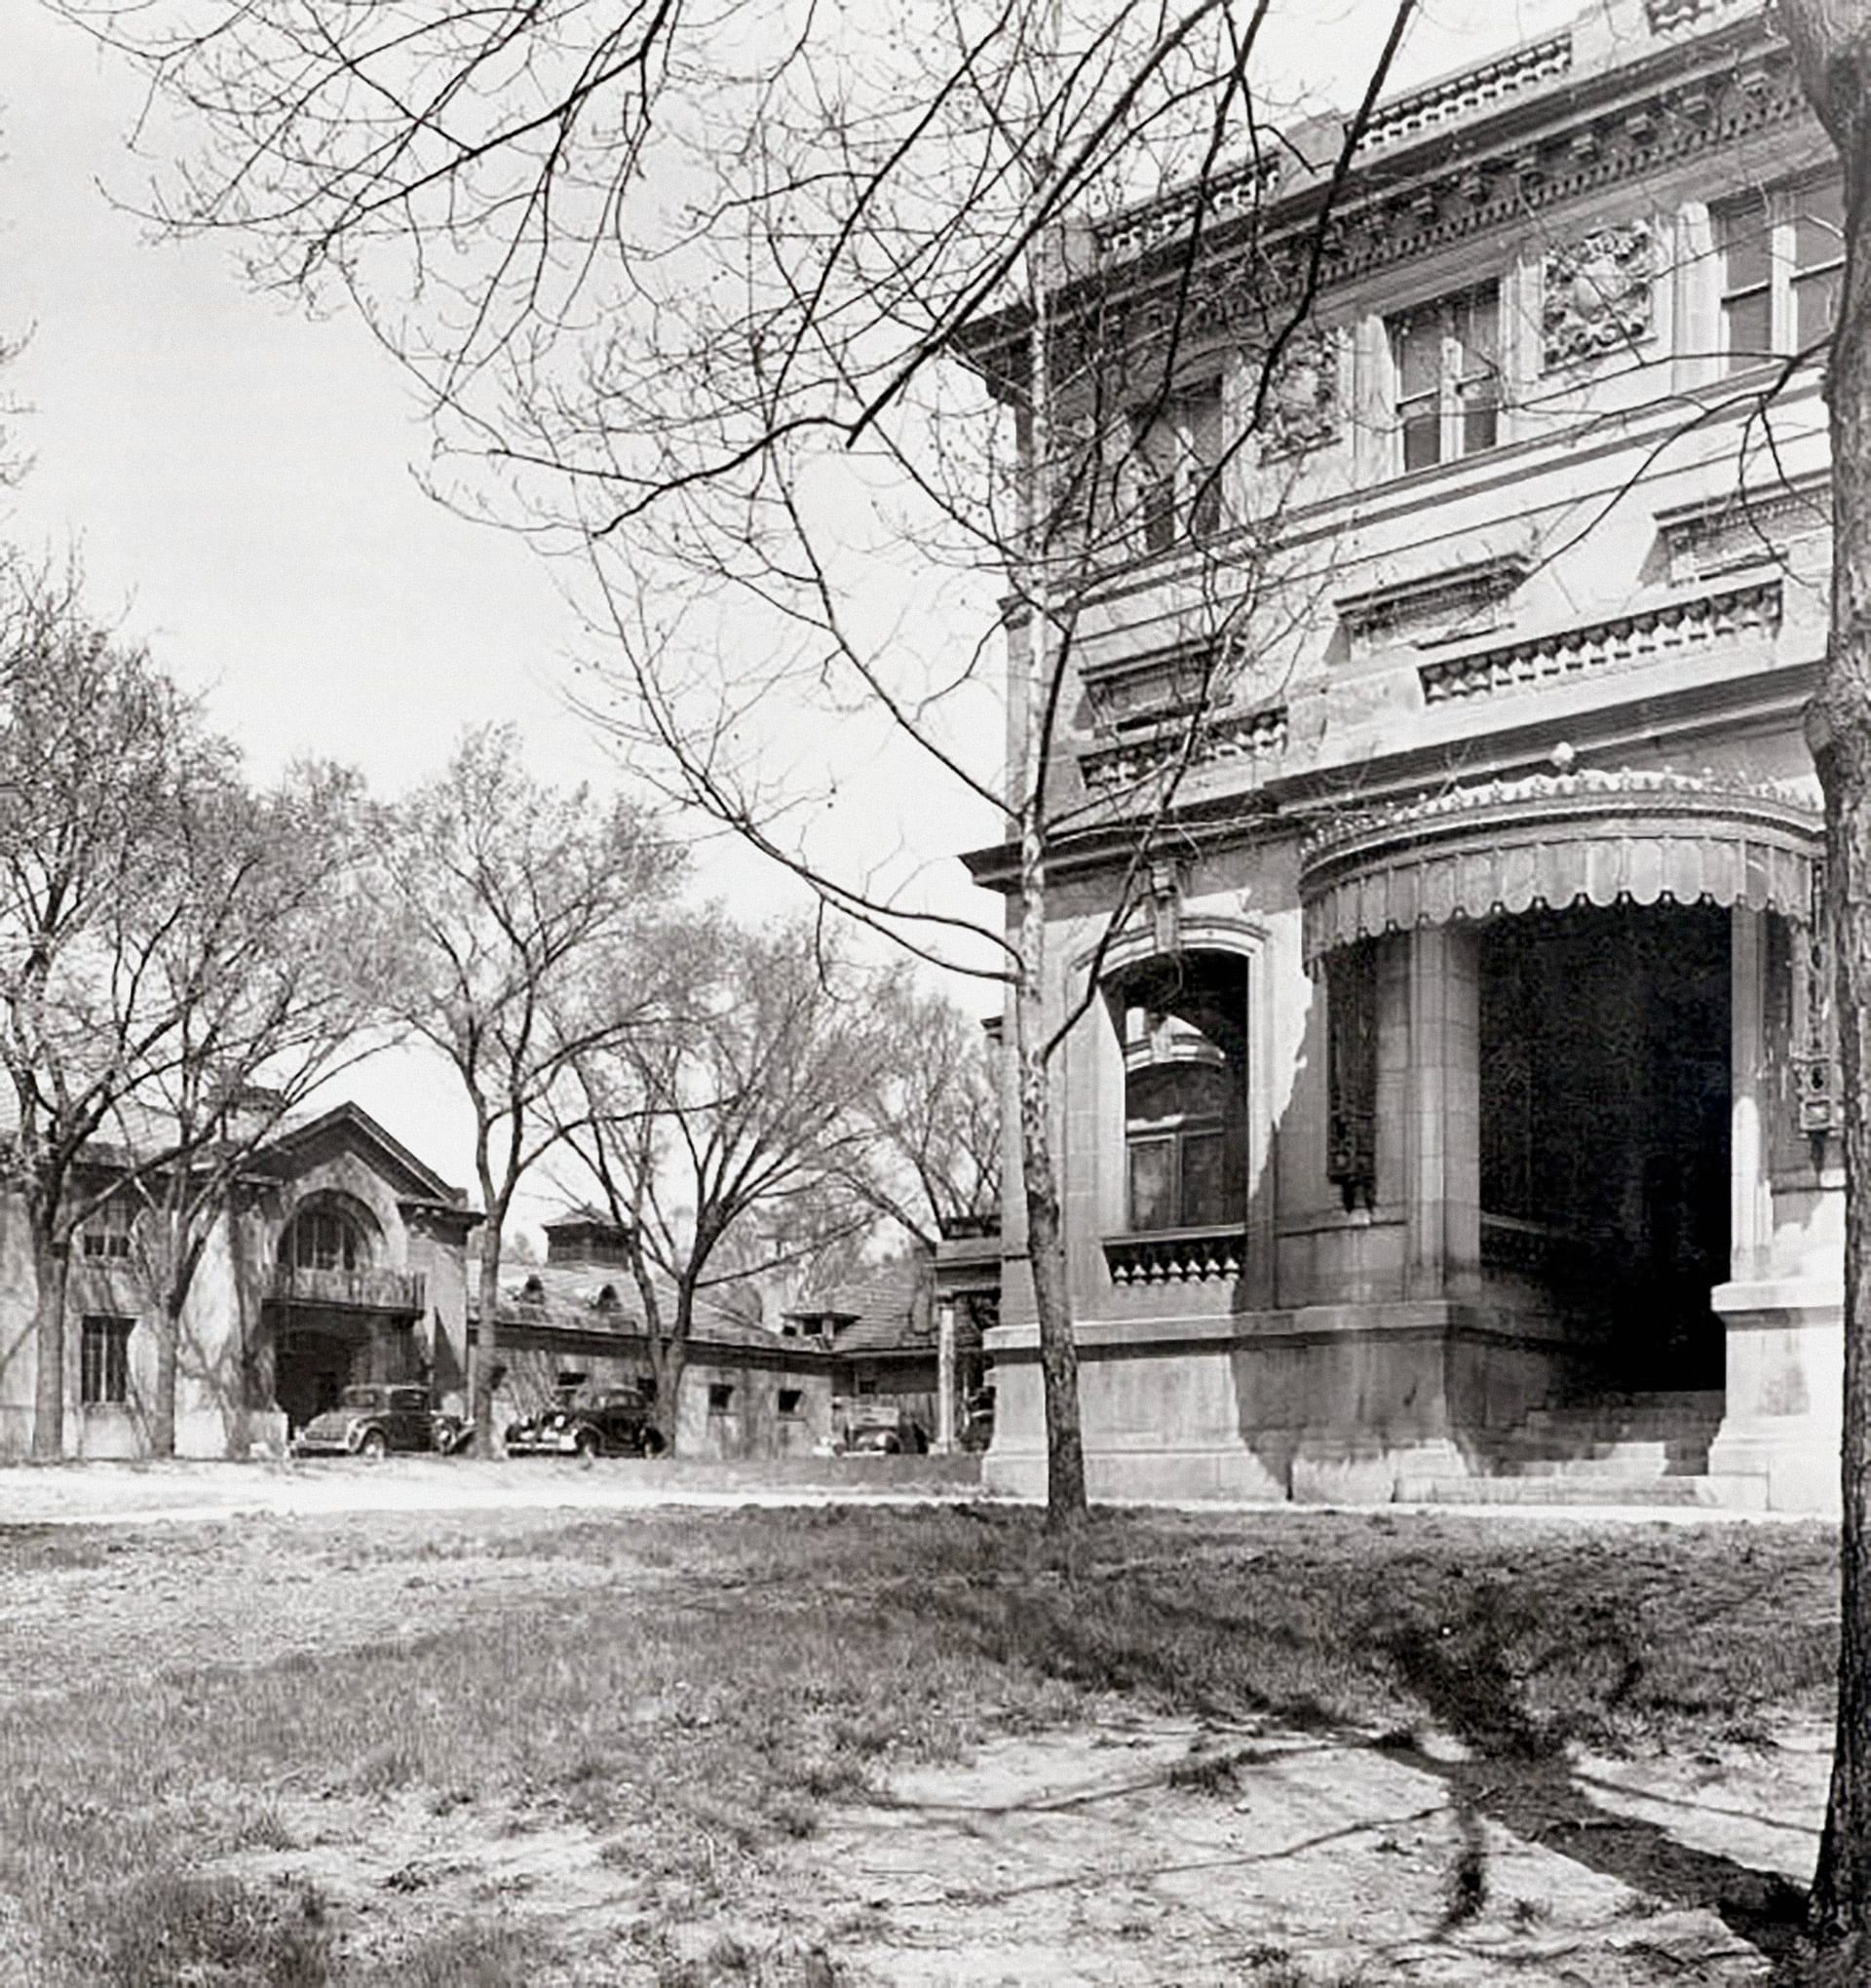 Corinthian Hall in 1912, showing the porte cochère on the building's west facade